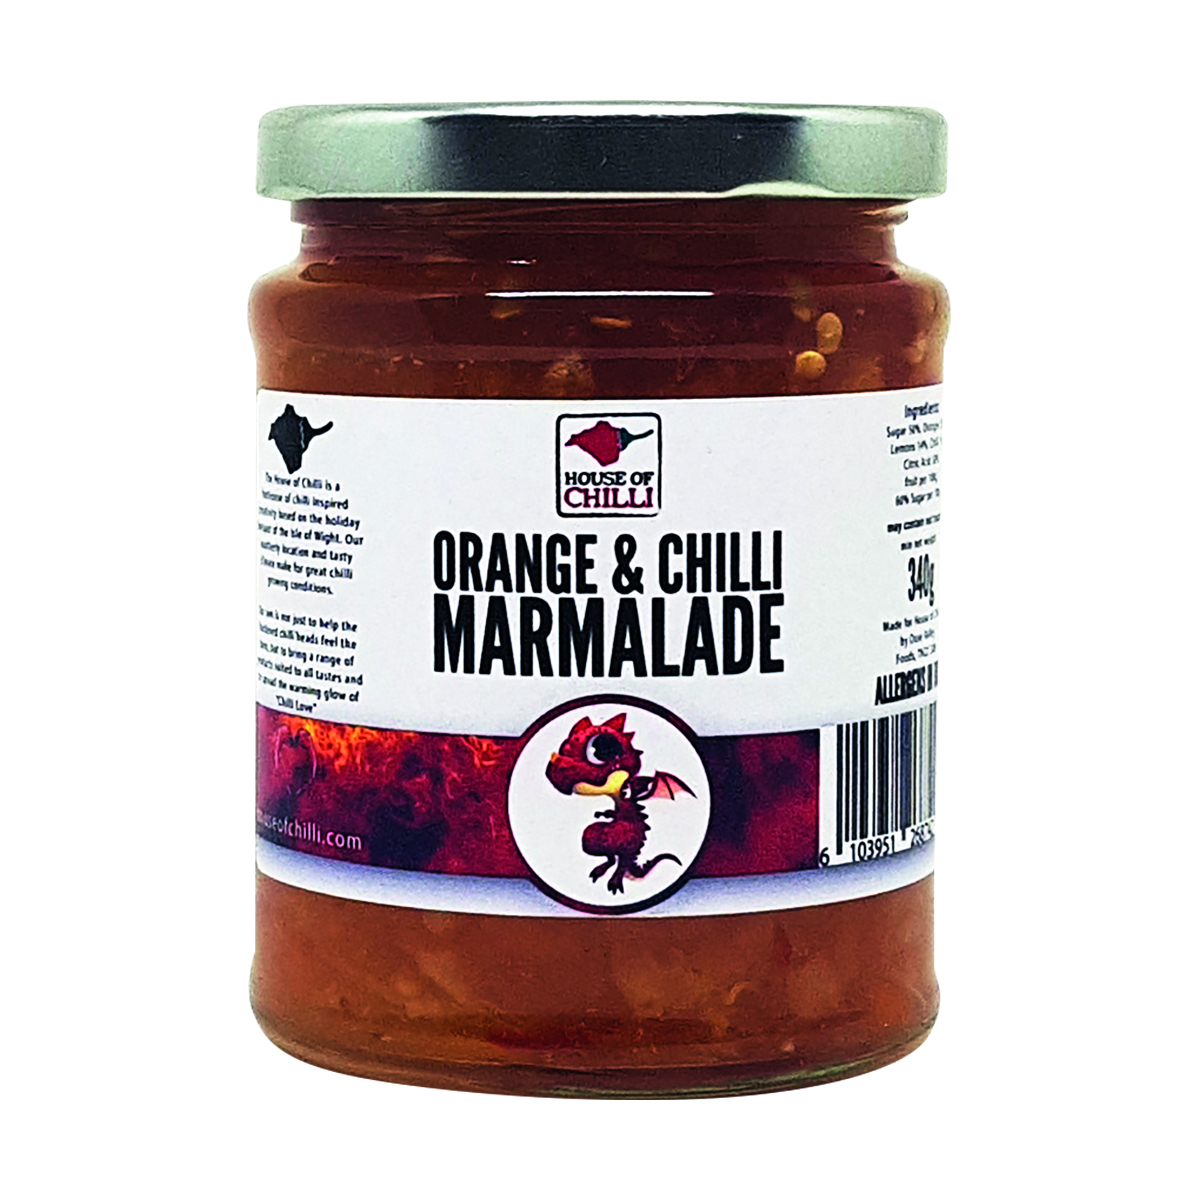 Orange & Chilli Marmalade